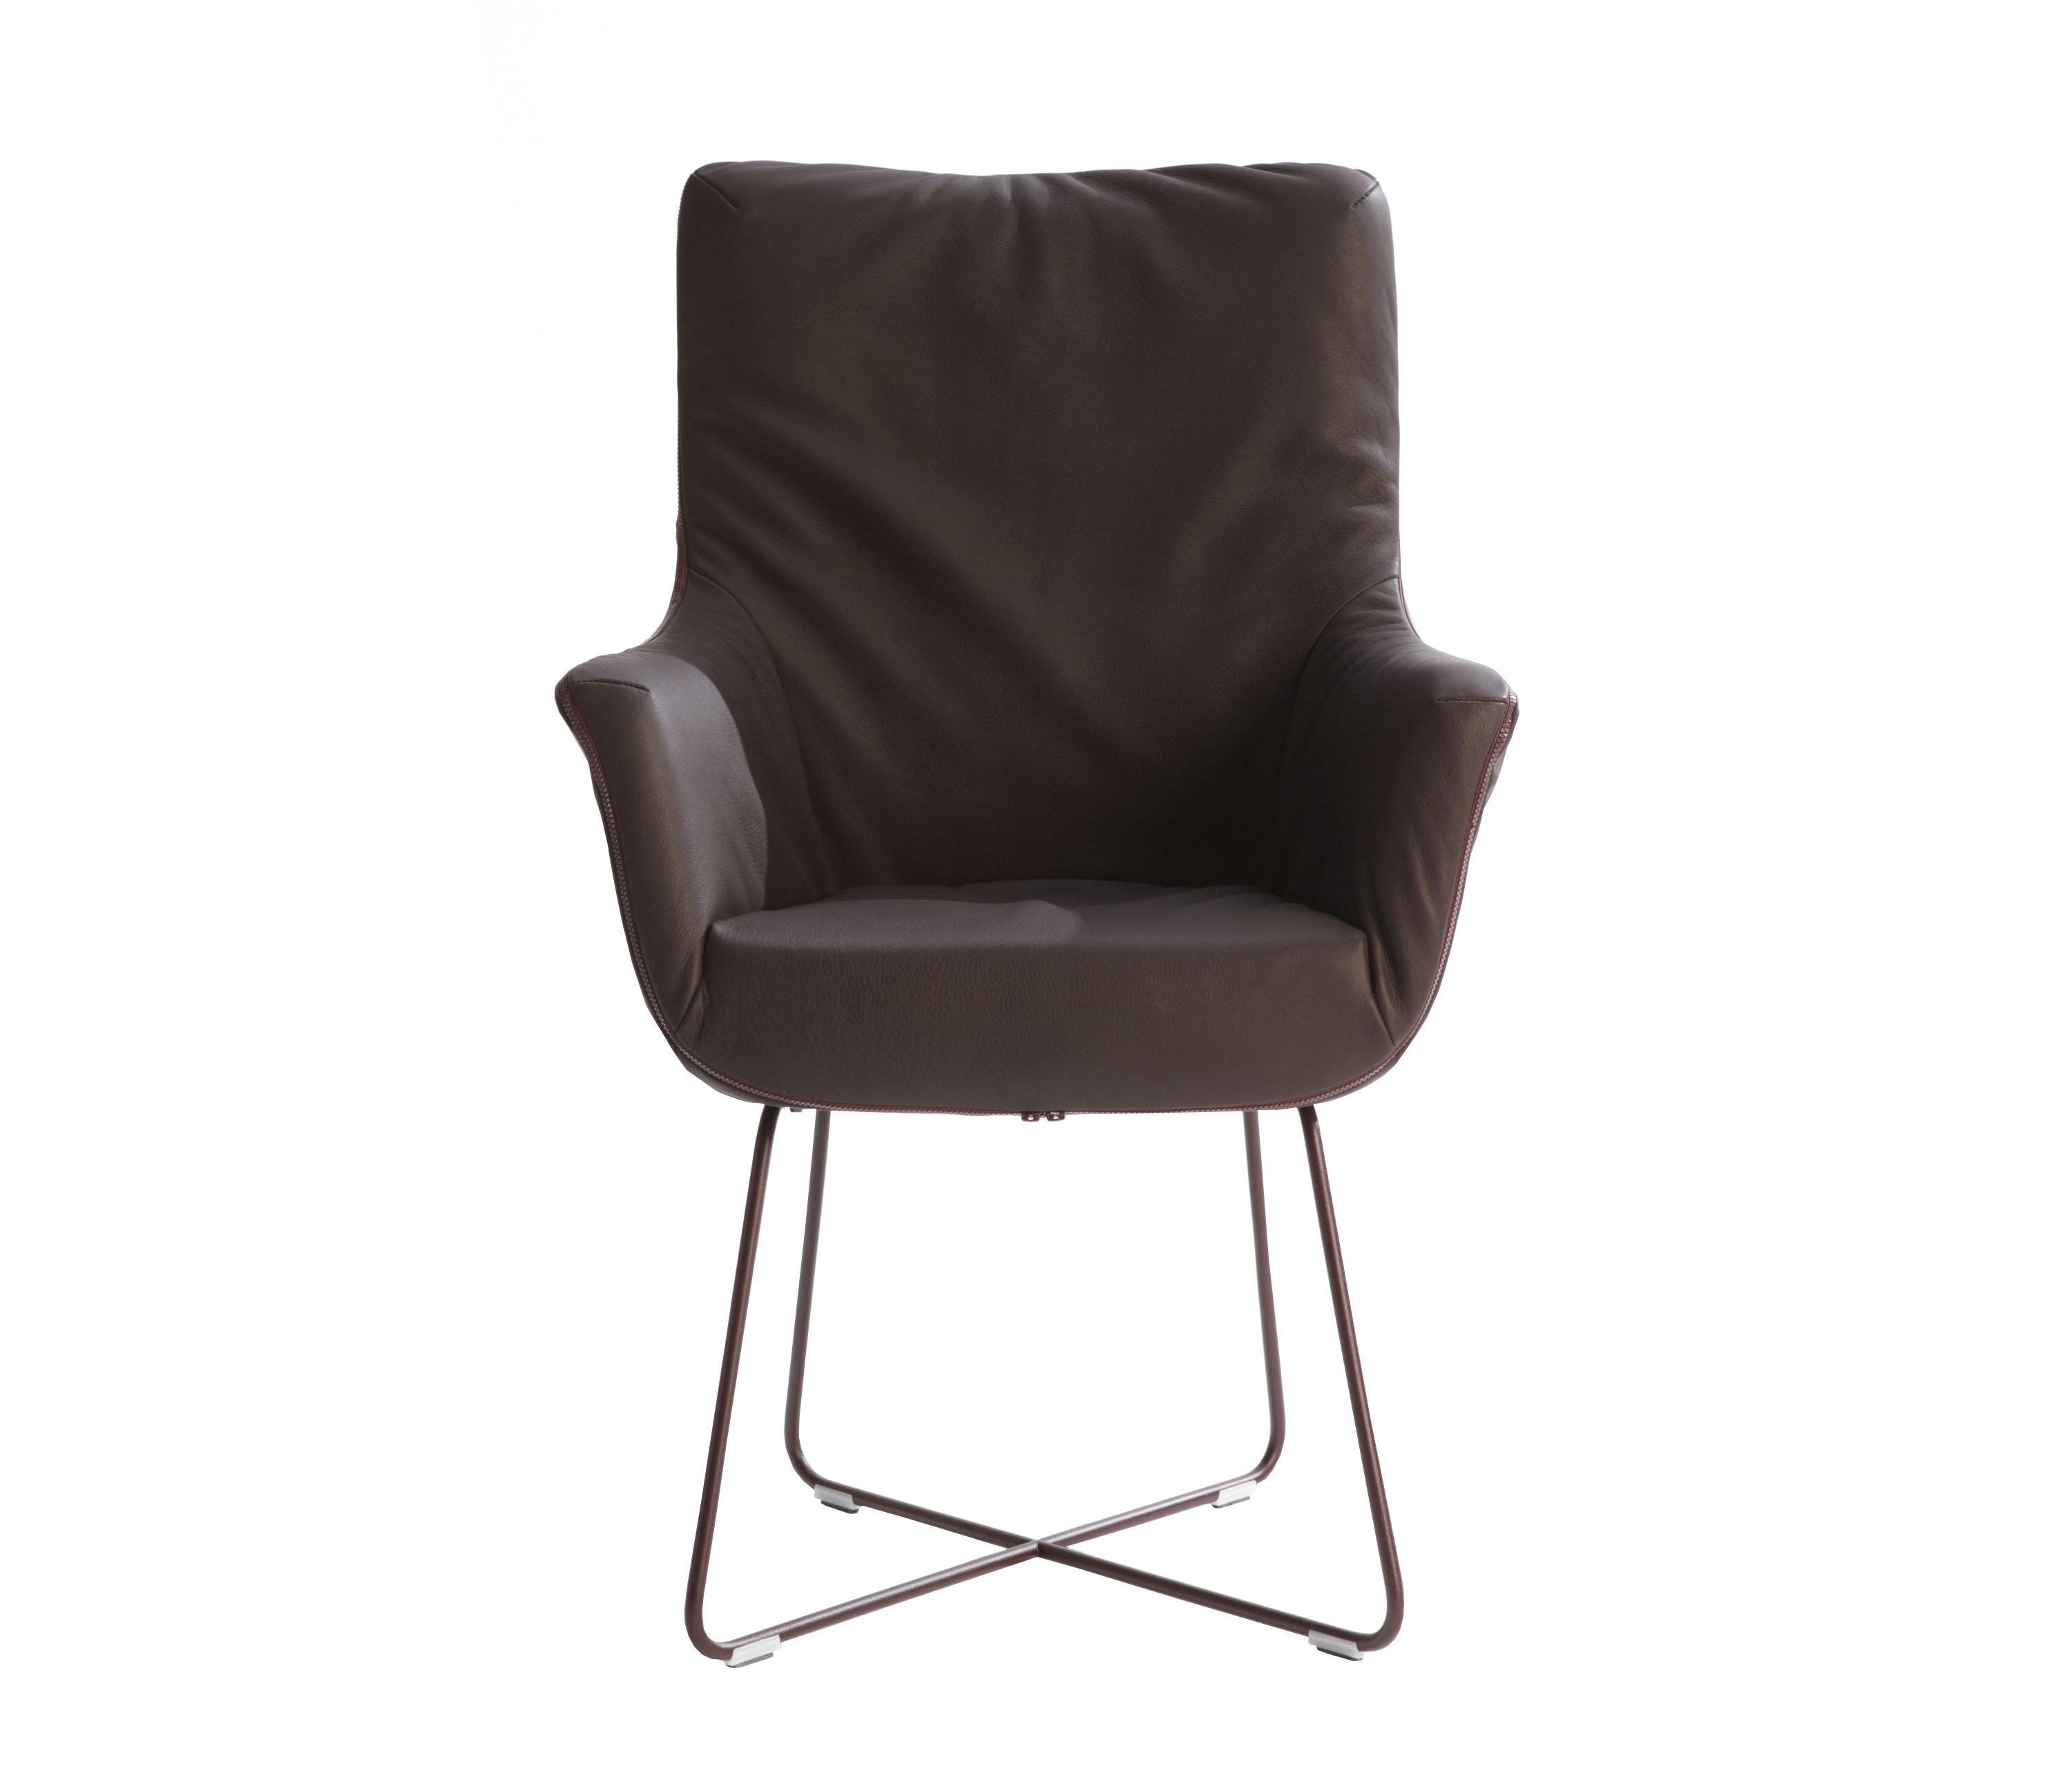 Chief Dining Chair By Label Van Den Berg | Chairs ...